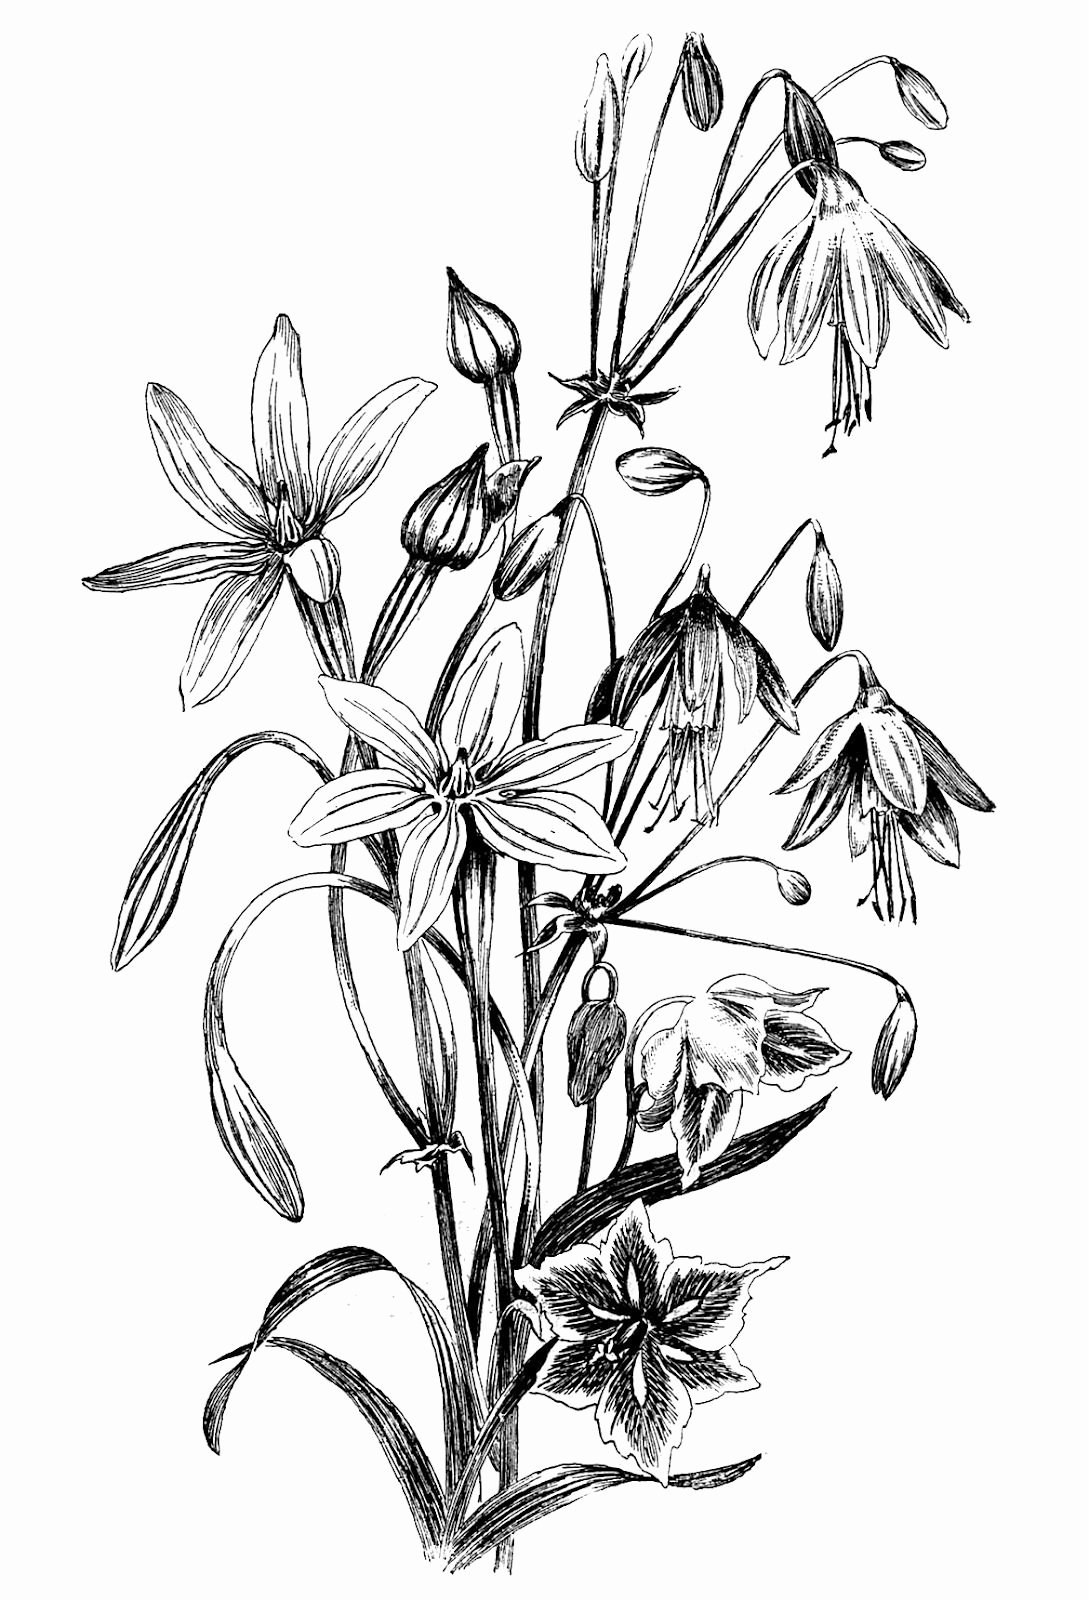 Black and White Flower Drawing Elegant Black and White Floral Drawing